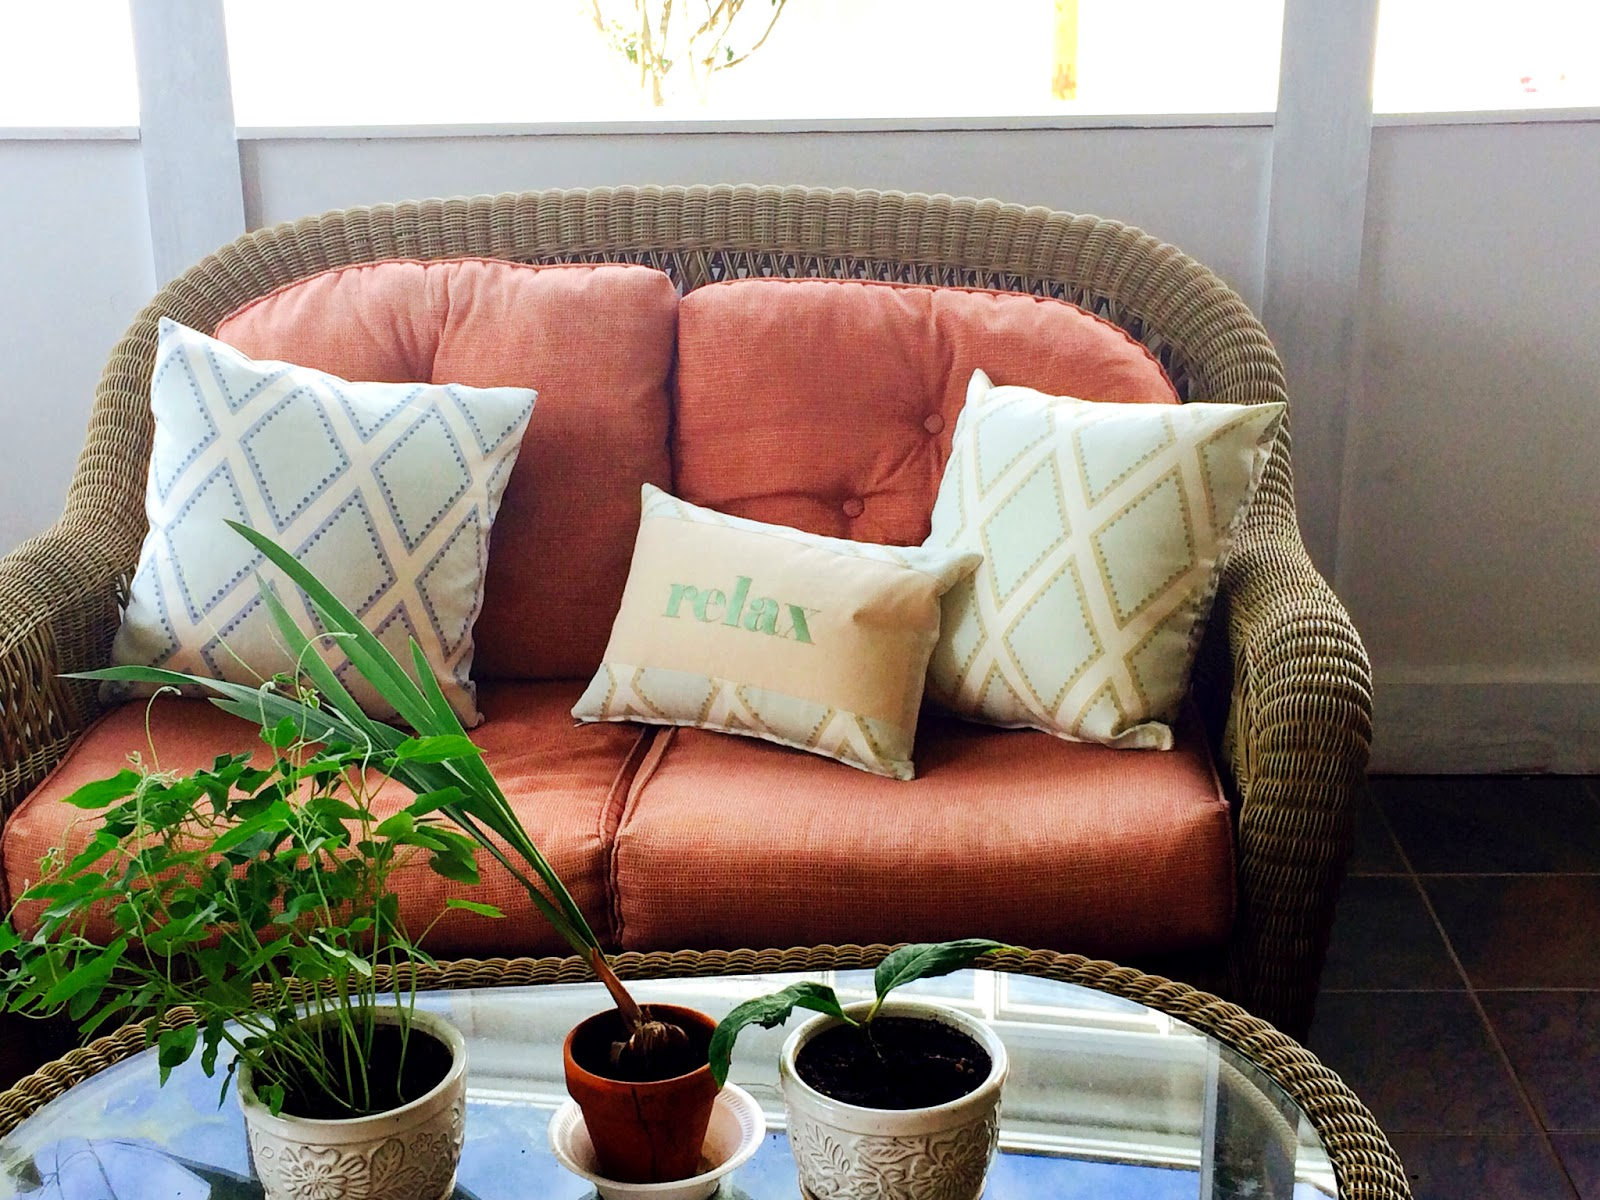 Relax Porch Message Pillow | Belinda Lee Designs | Personalized Pillows | Unify Mismatched Furniture